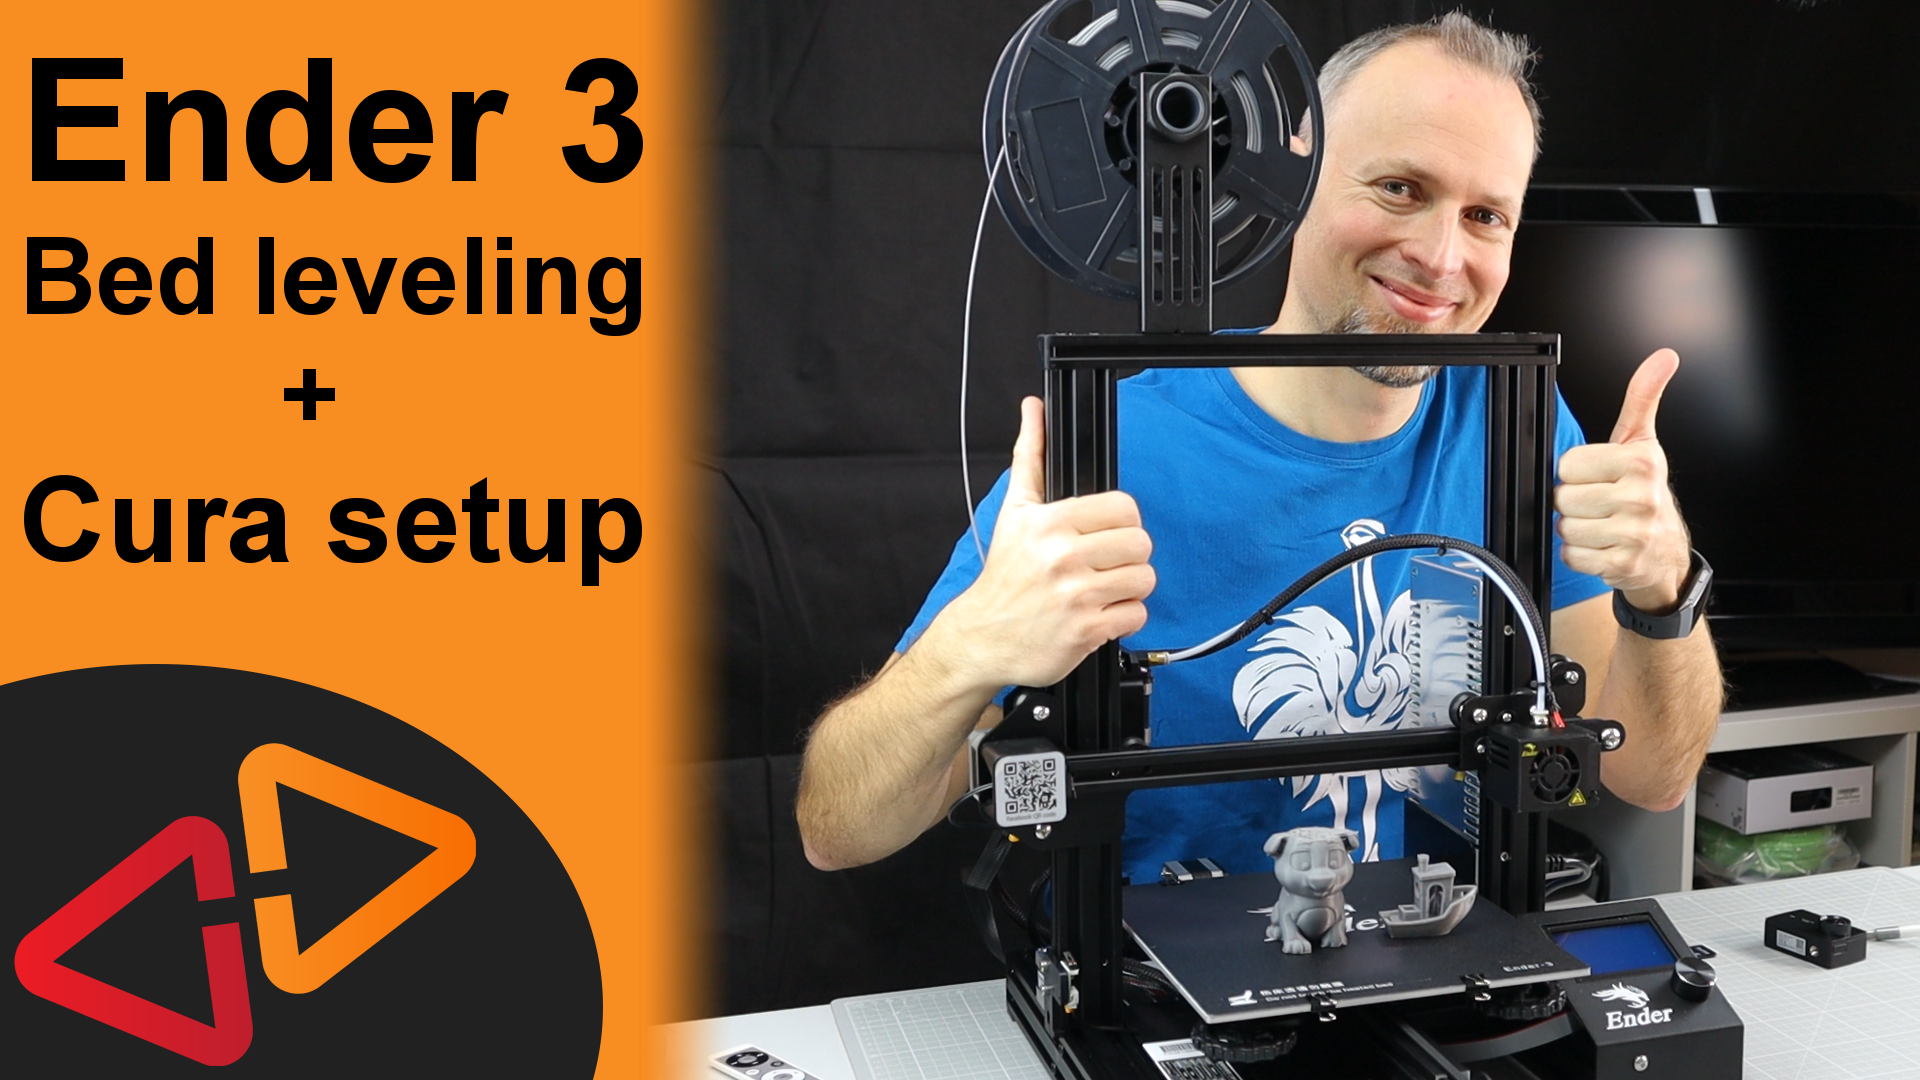 Ender 3 Bed leveling and Cura setup